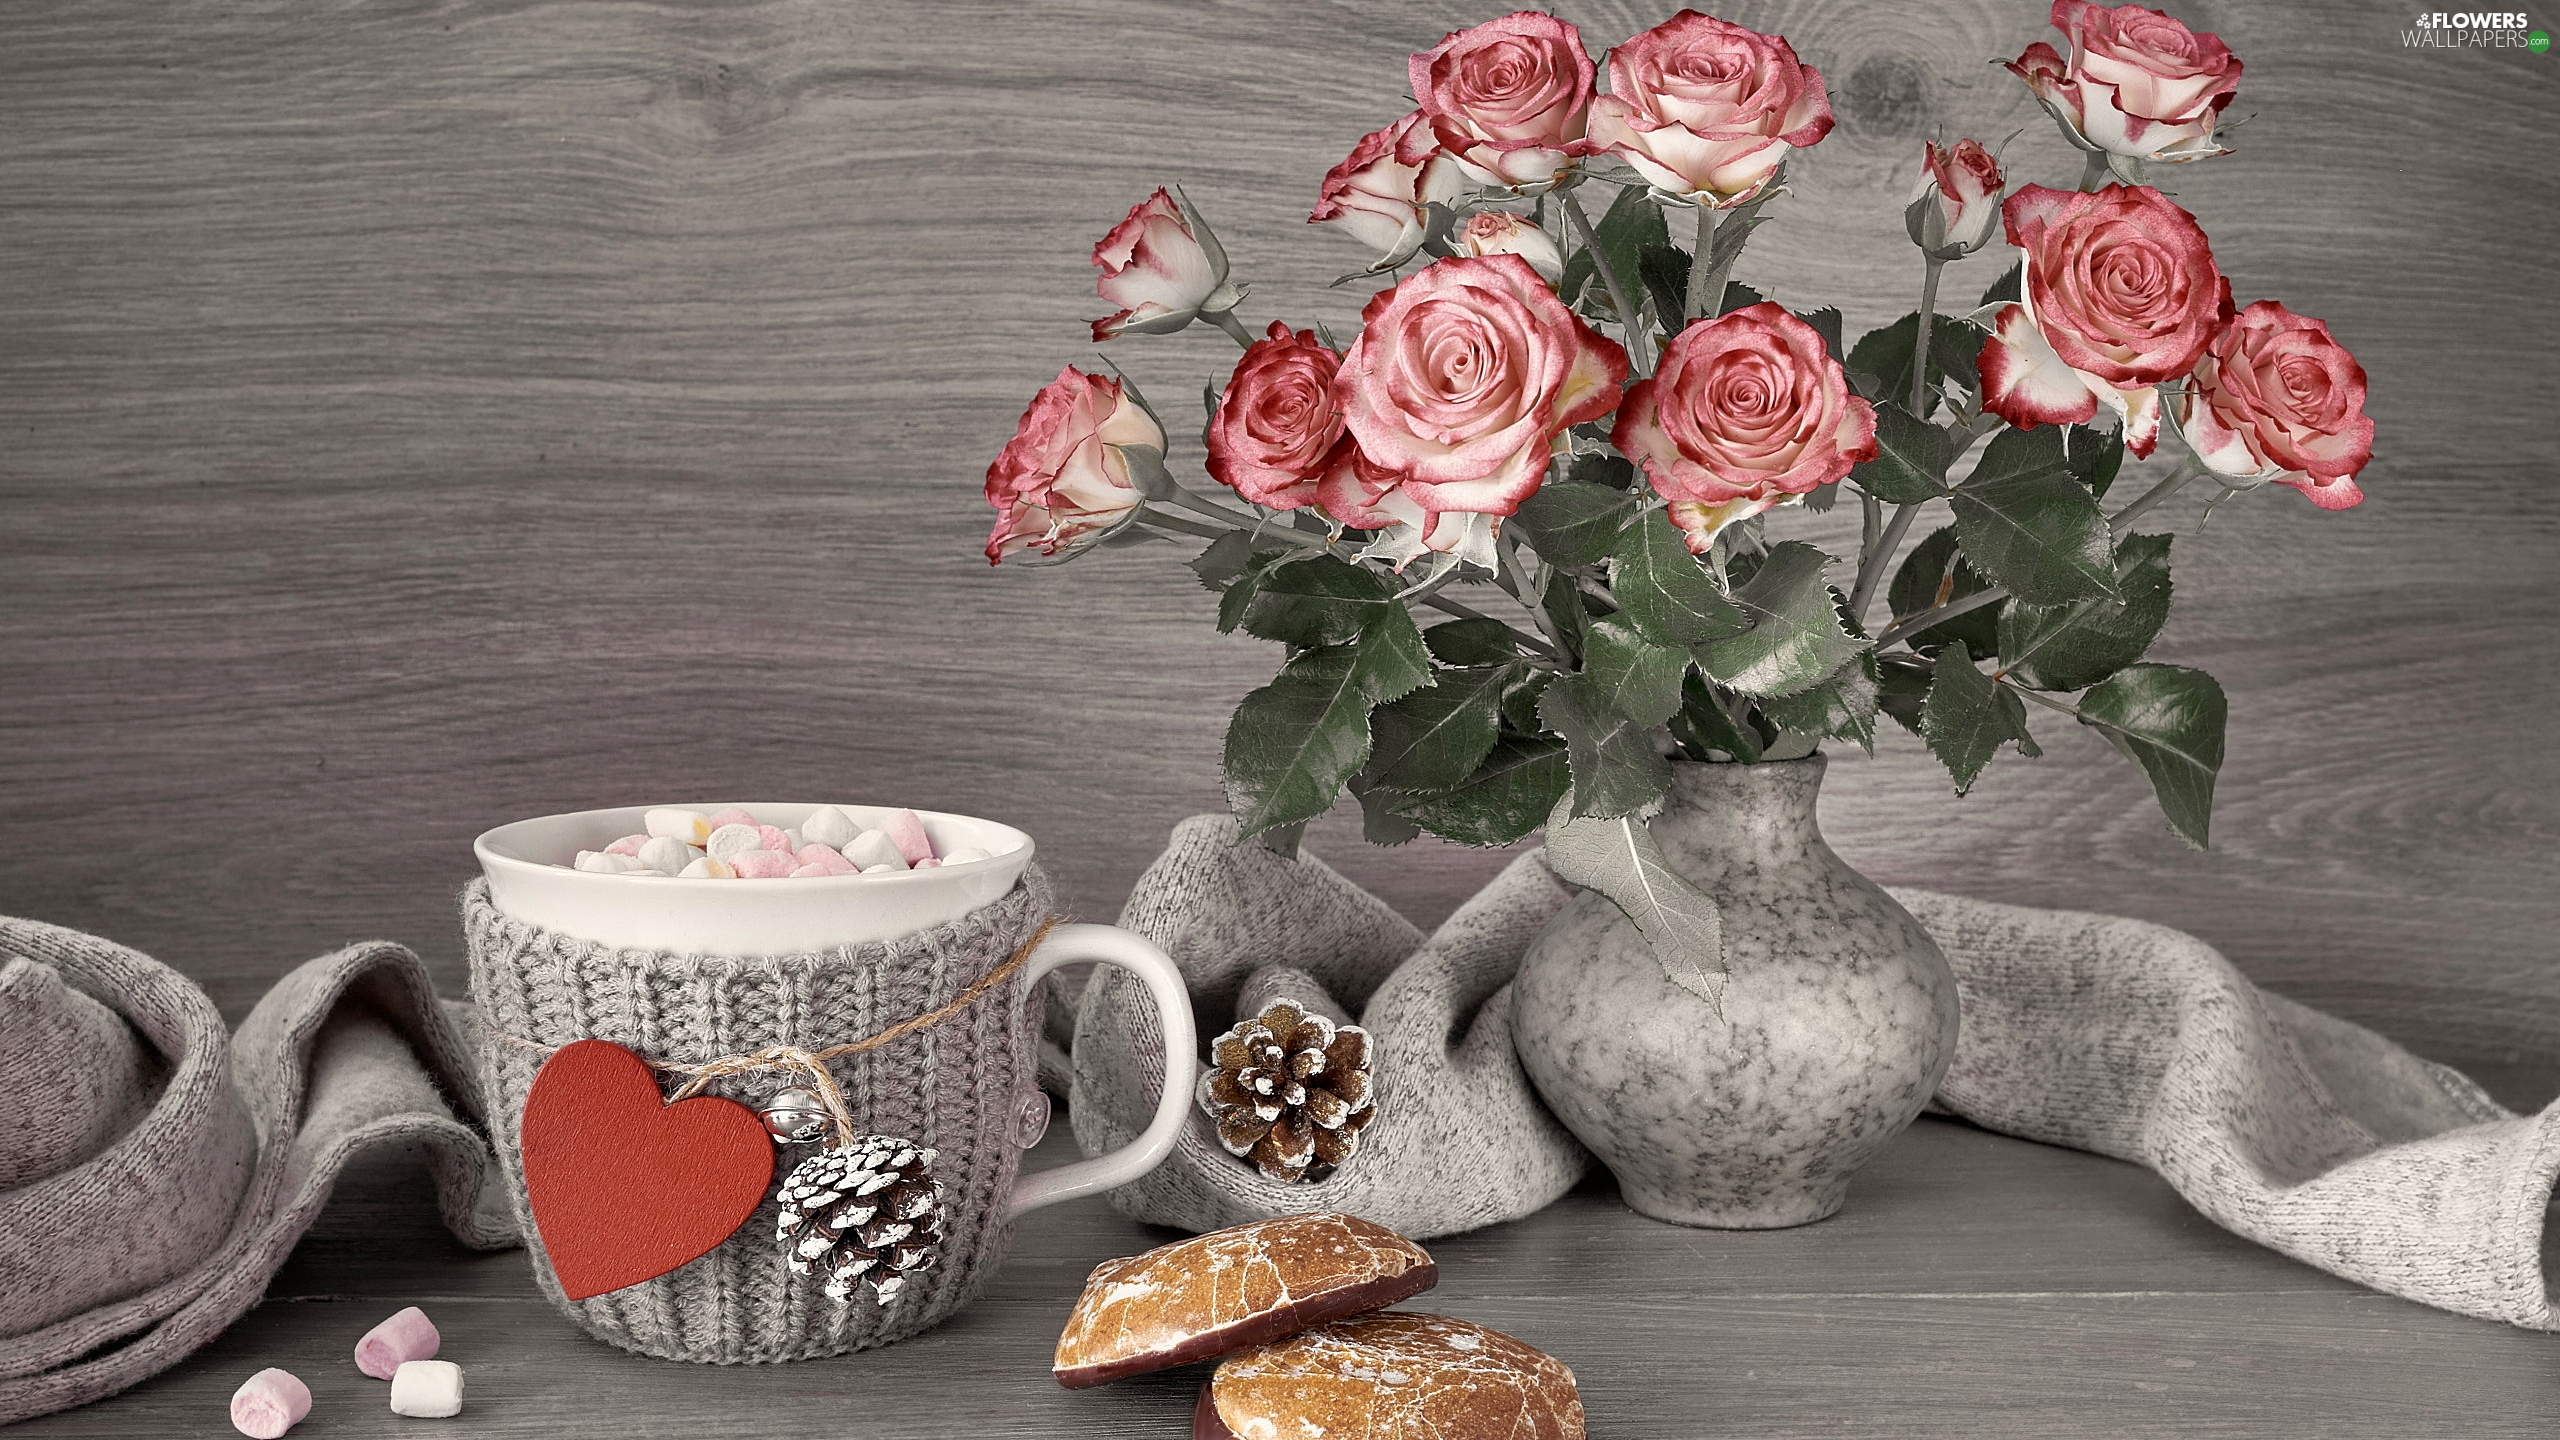 coffee, Cup, Foams, Heart teddybear, Scarf, composition, Vase, roses, cookies